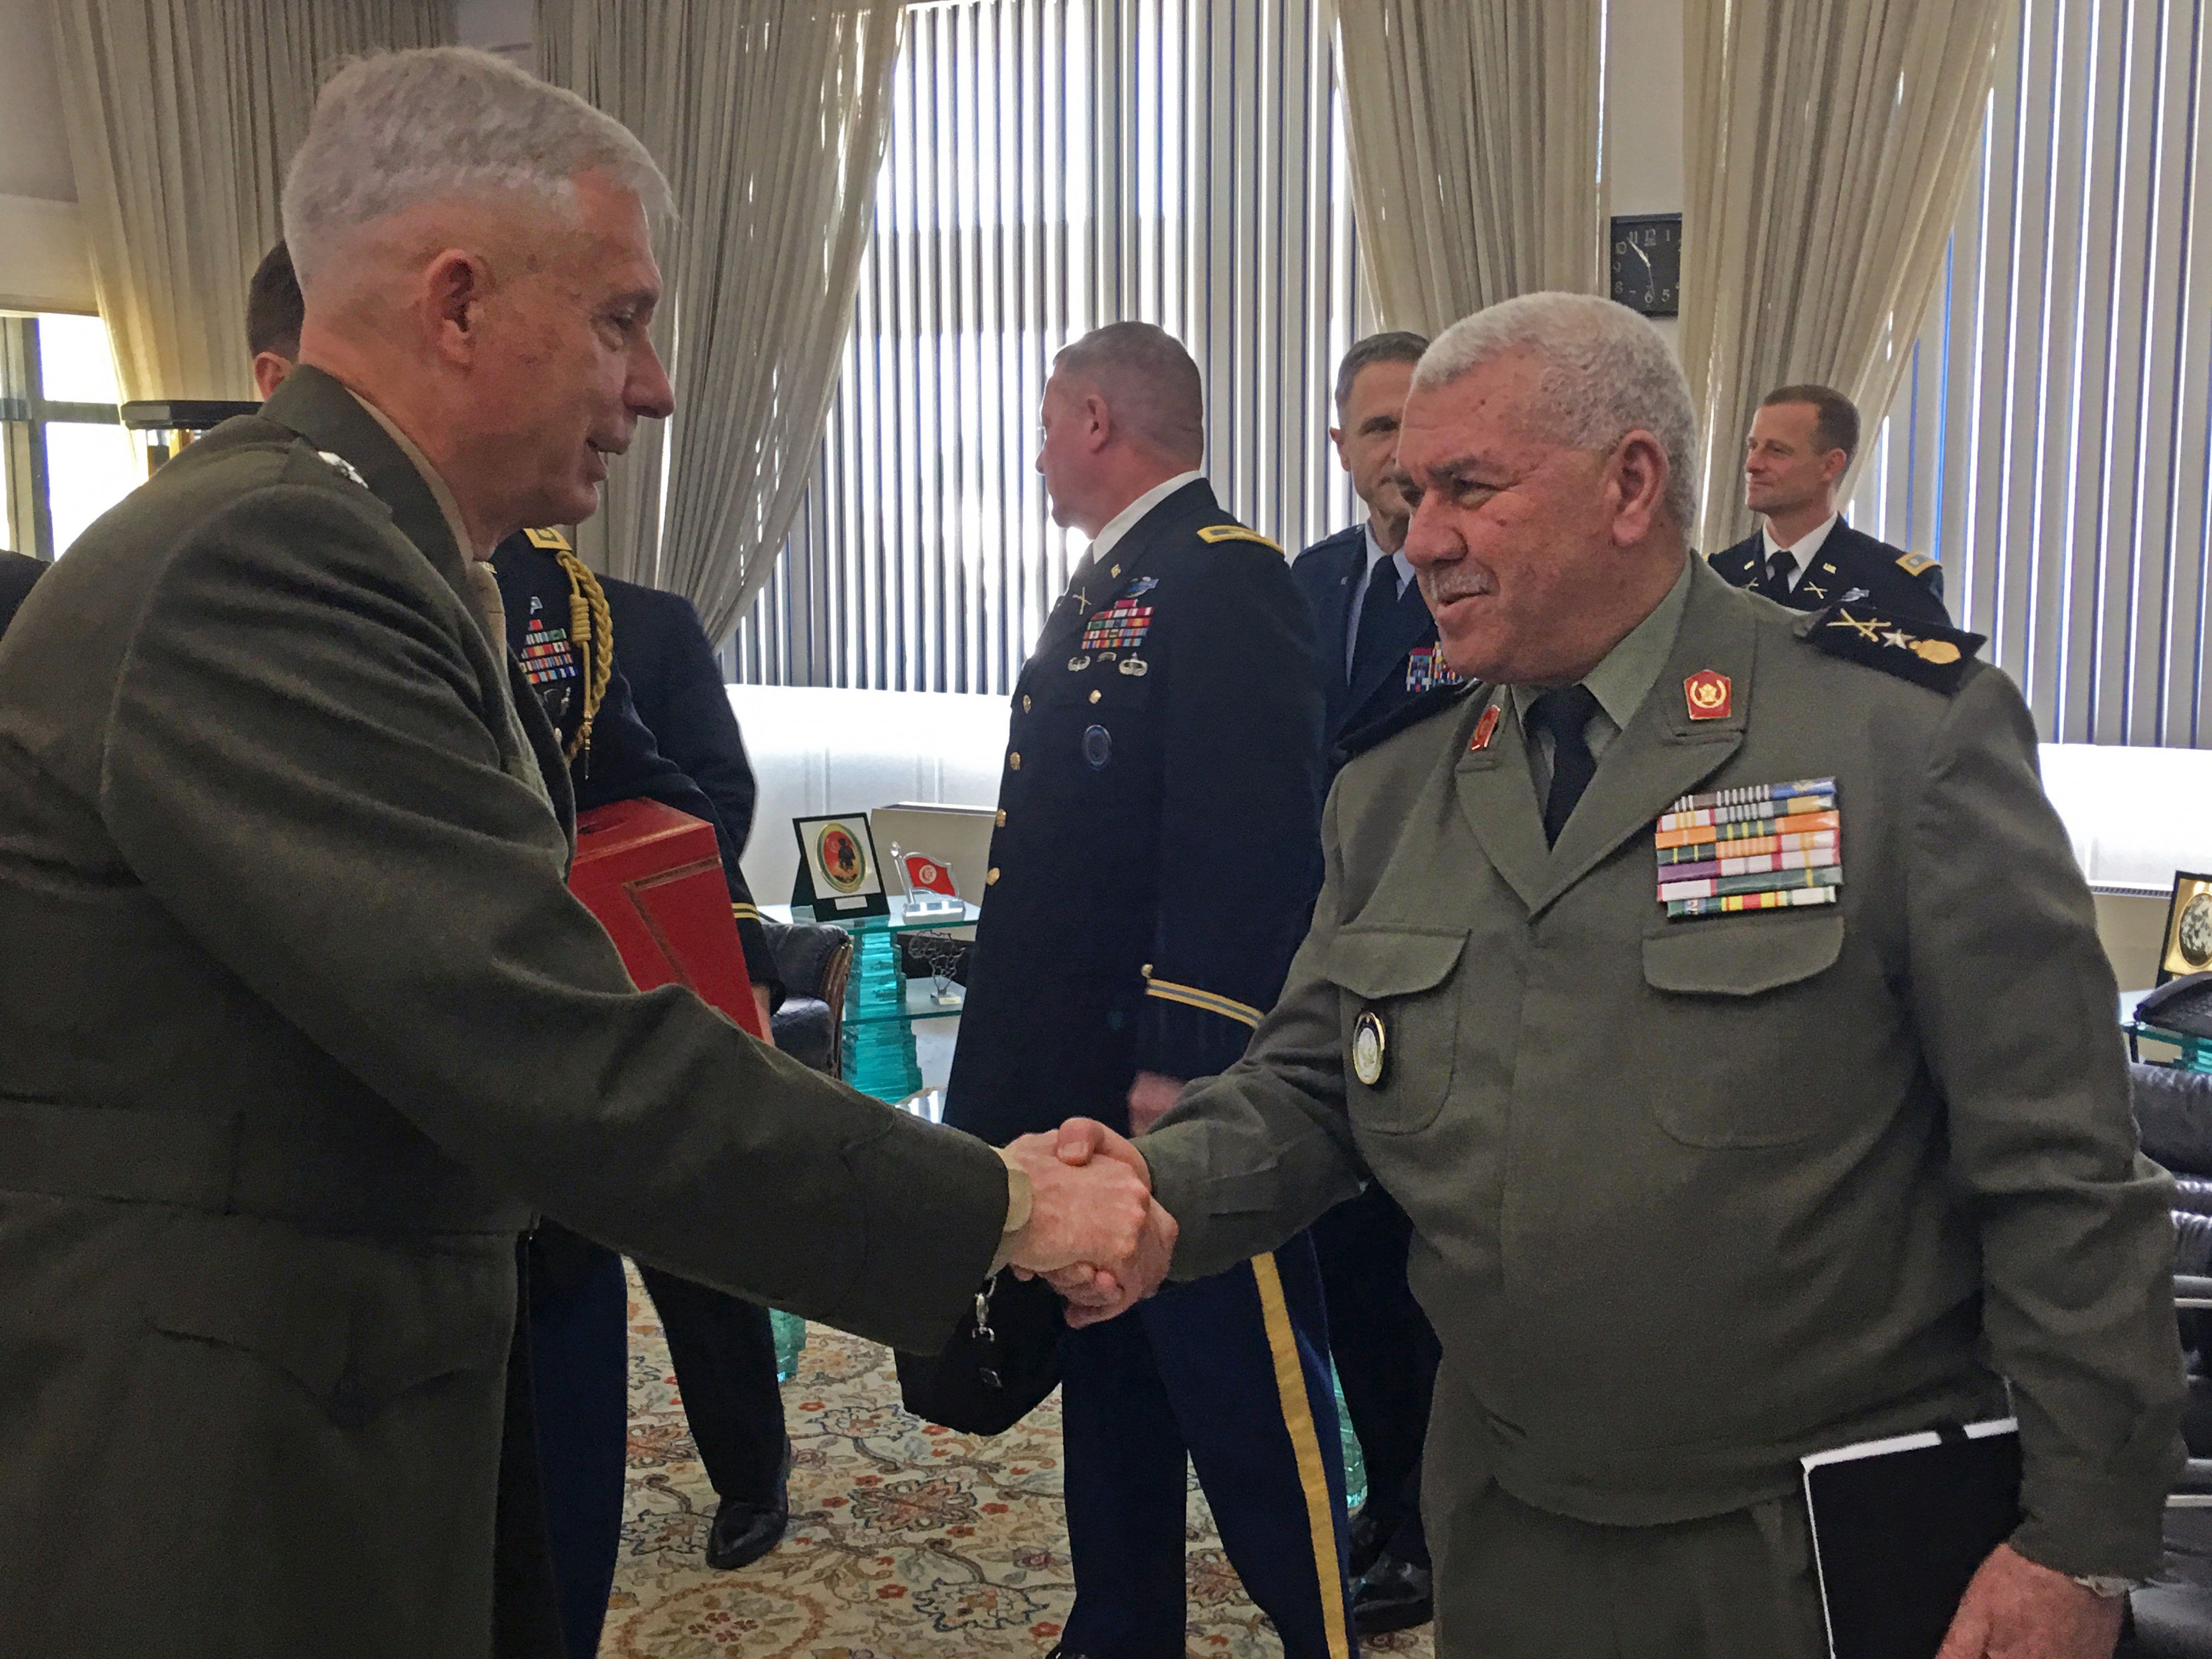 Marine Corps Gen. Thomas D. Waldhauser met with Tunisian military officials in Tunis, Tunisia May 16, 2019. Waldhauser was in Tunis to discuss AFRICOM's role in the region as well as exploring common challenges and areas to partner with the Tunisian military in the future.